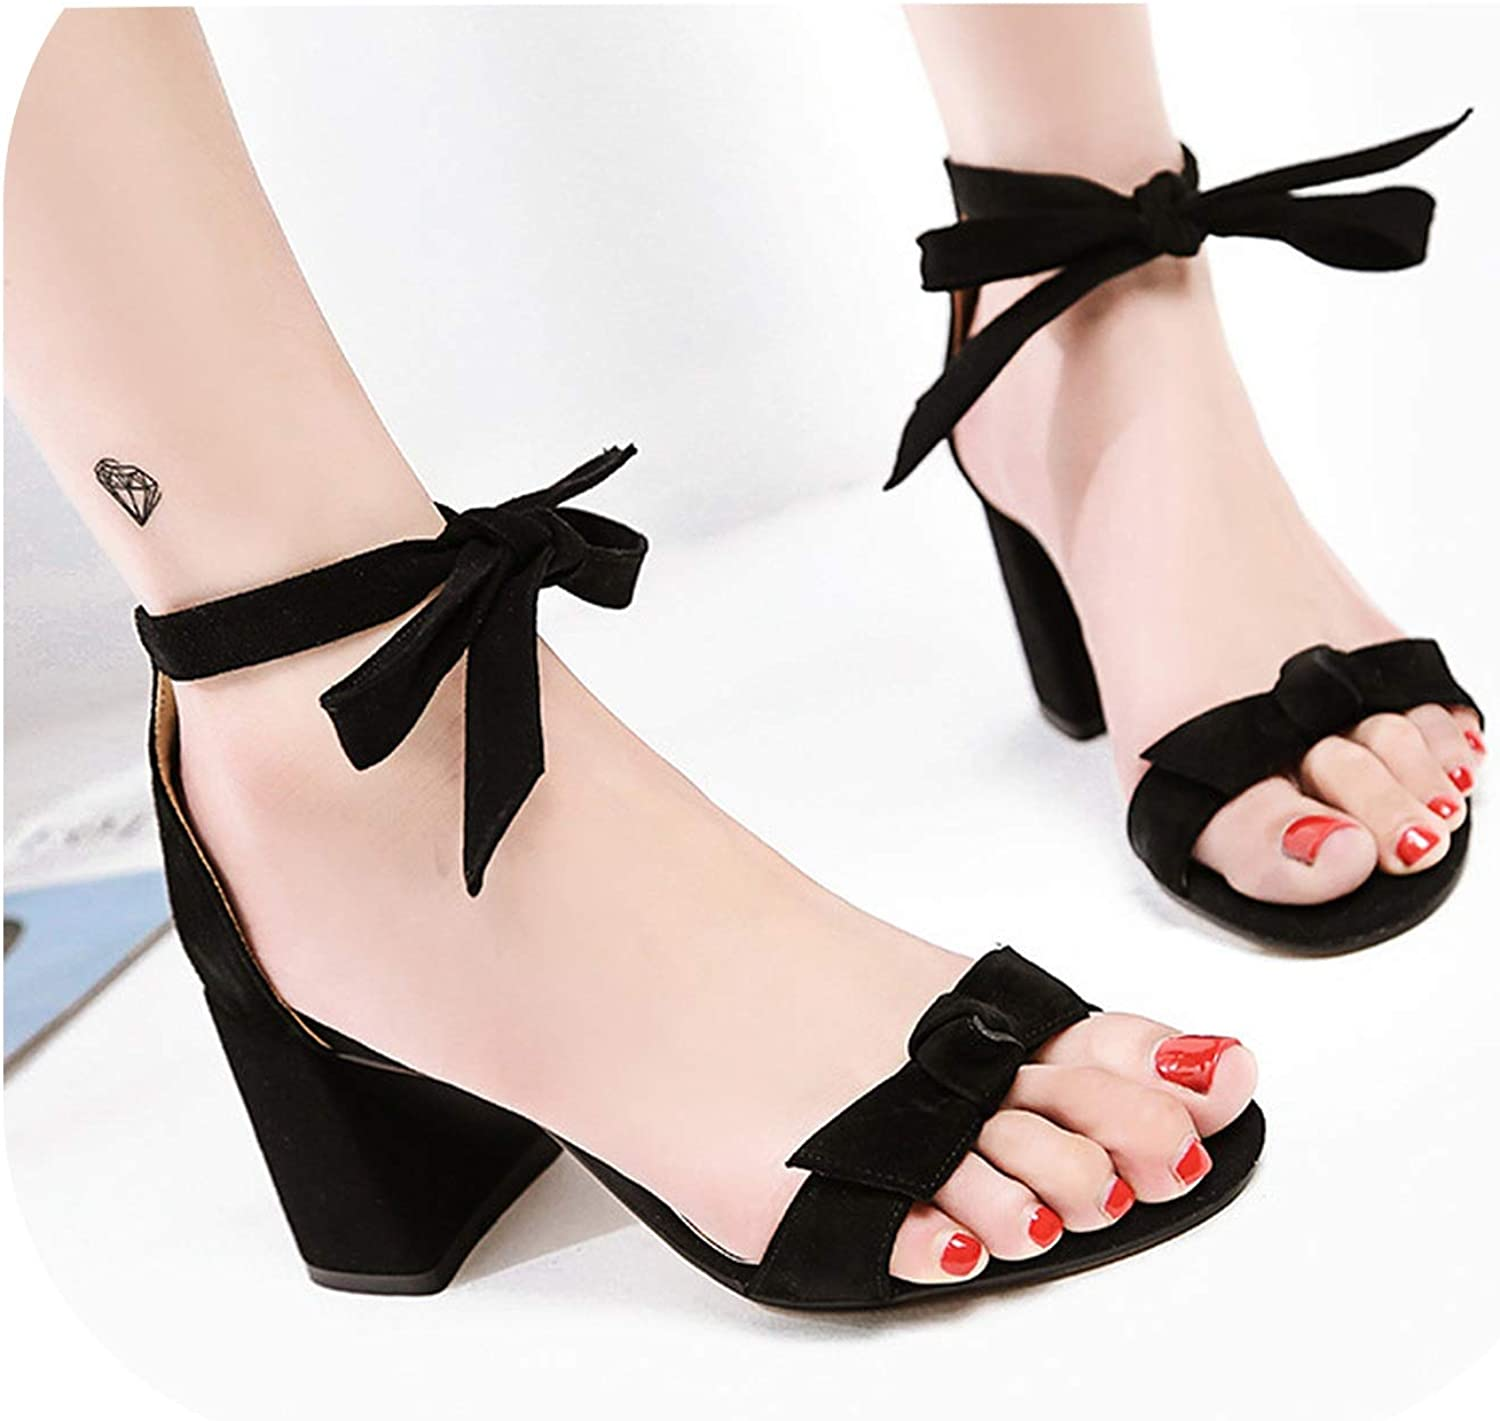 High Heels Sandals Women Cross Strappy Sandals Women shoes Sexy Sandals Season